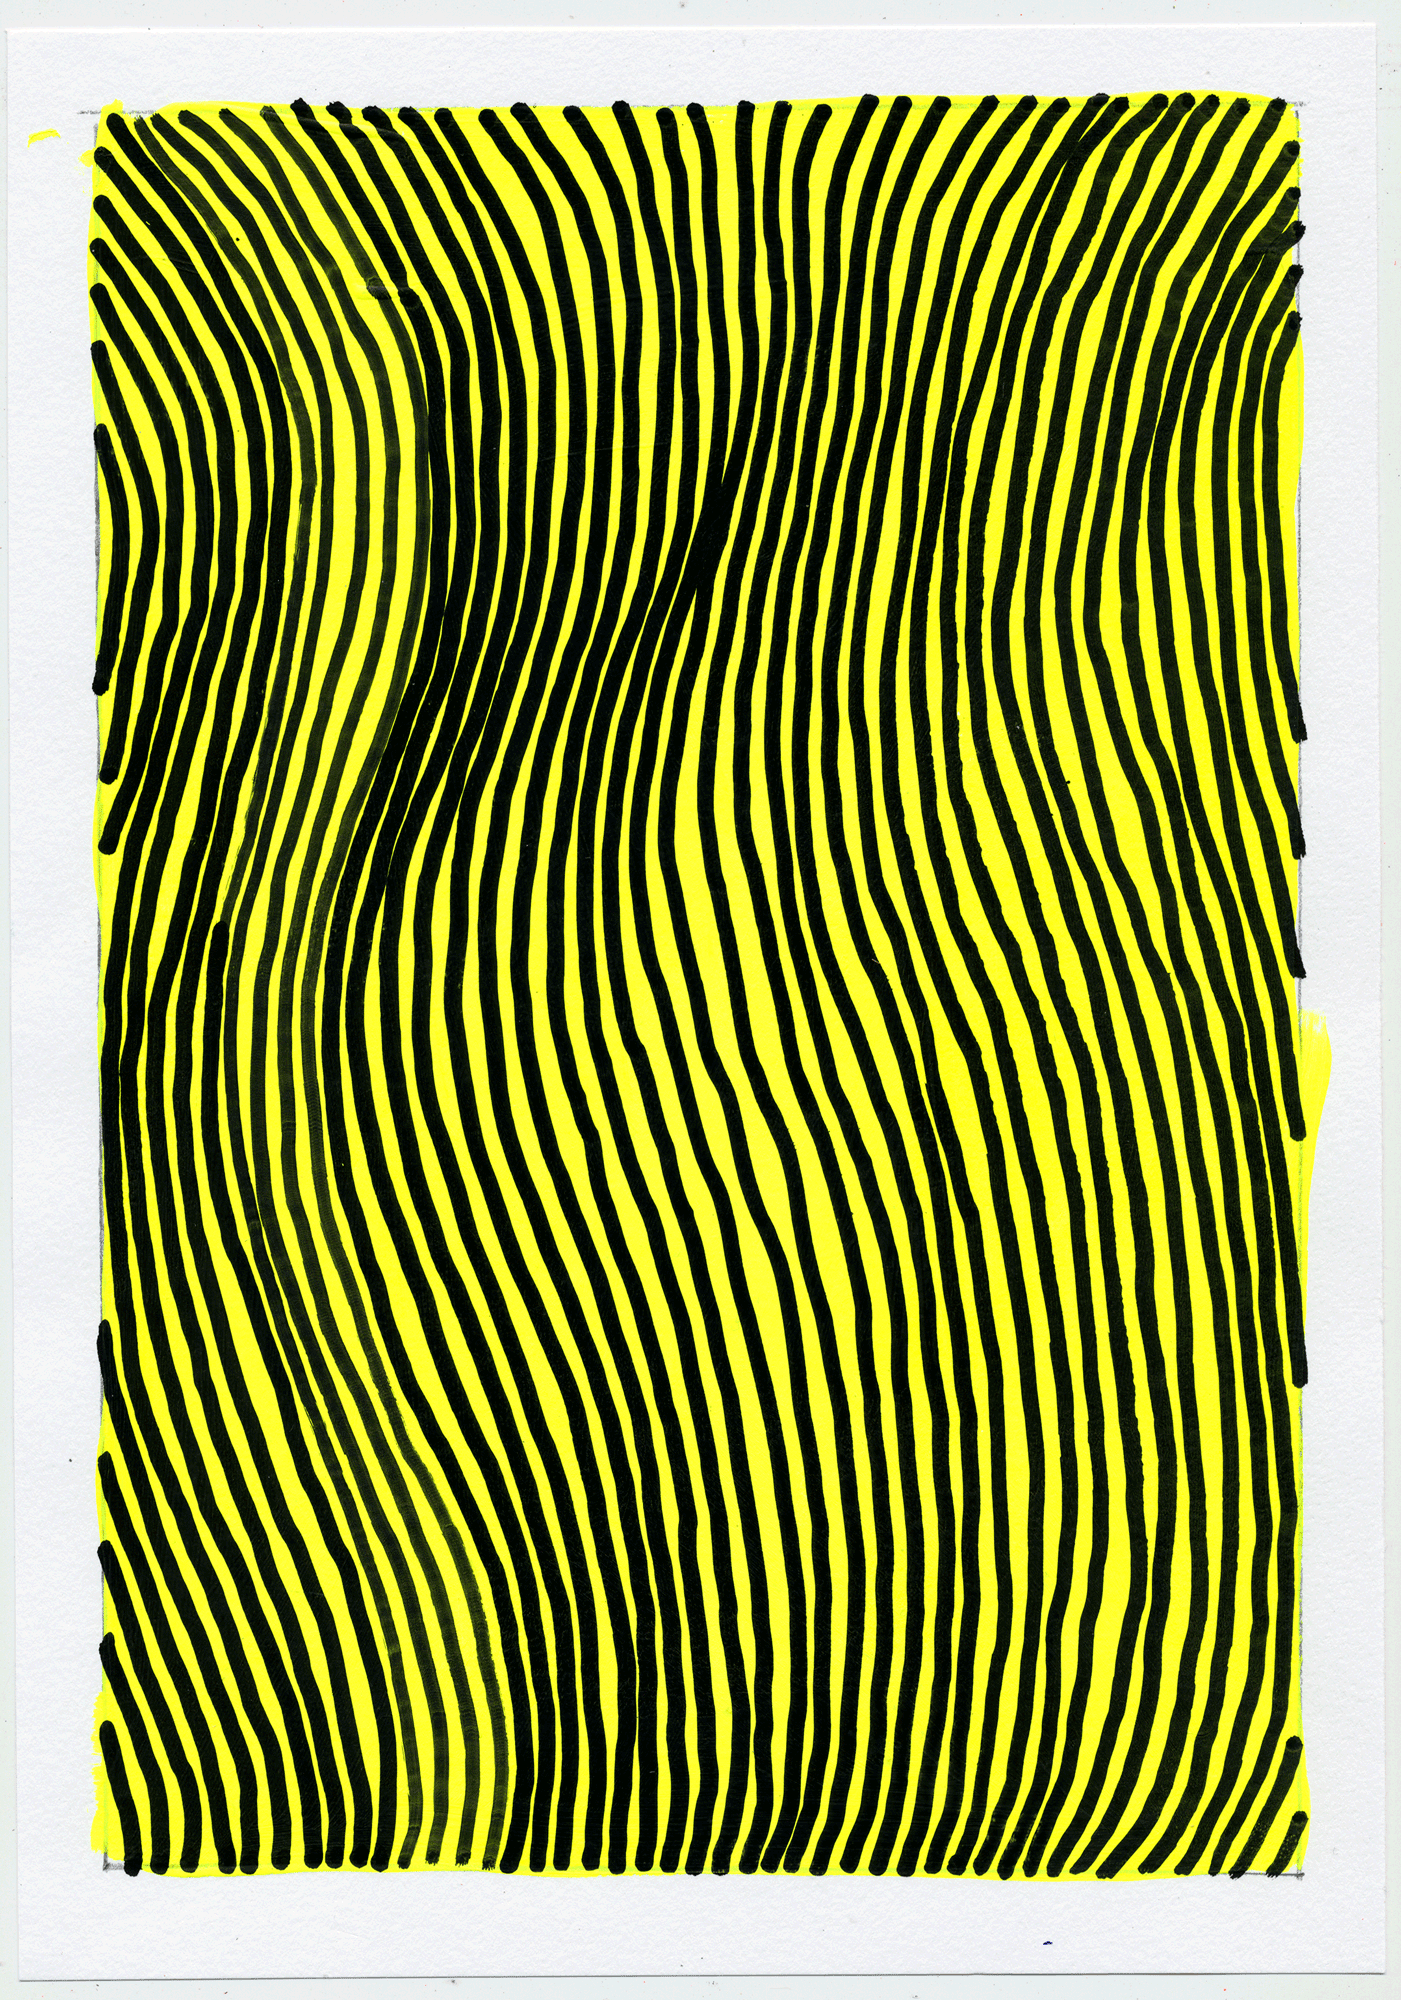 "NY1753 10"" X 7"", acrylic on paper, 2017  available at Etsy   i never get sick of repeating simple shapes over bright colors and watching what my unstable hand will create. usually a swerving optic trip."